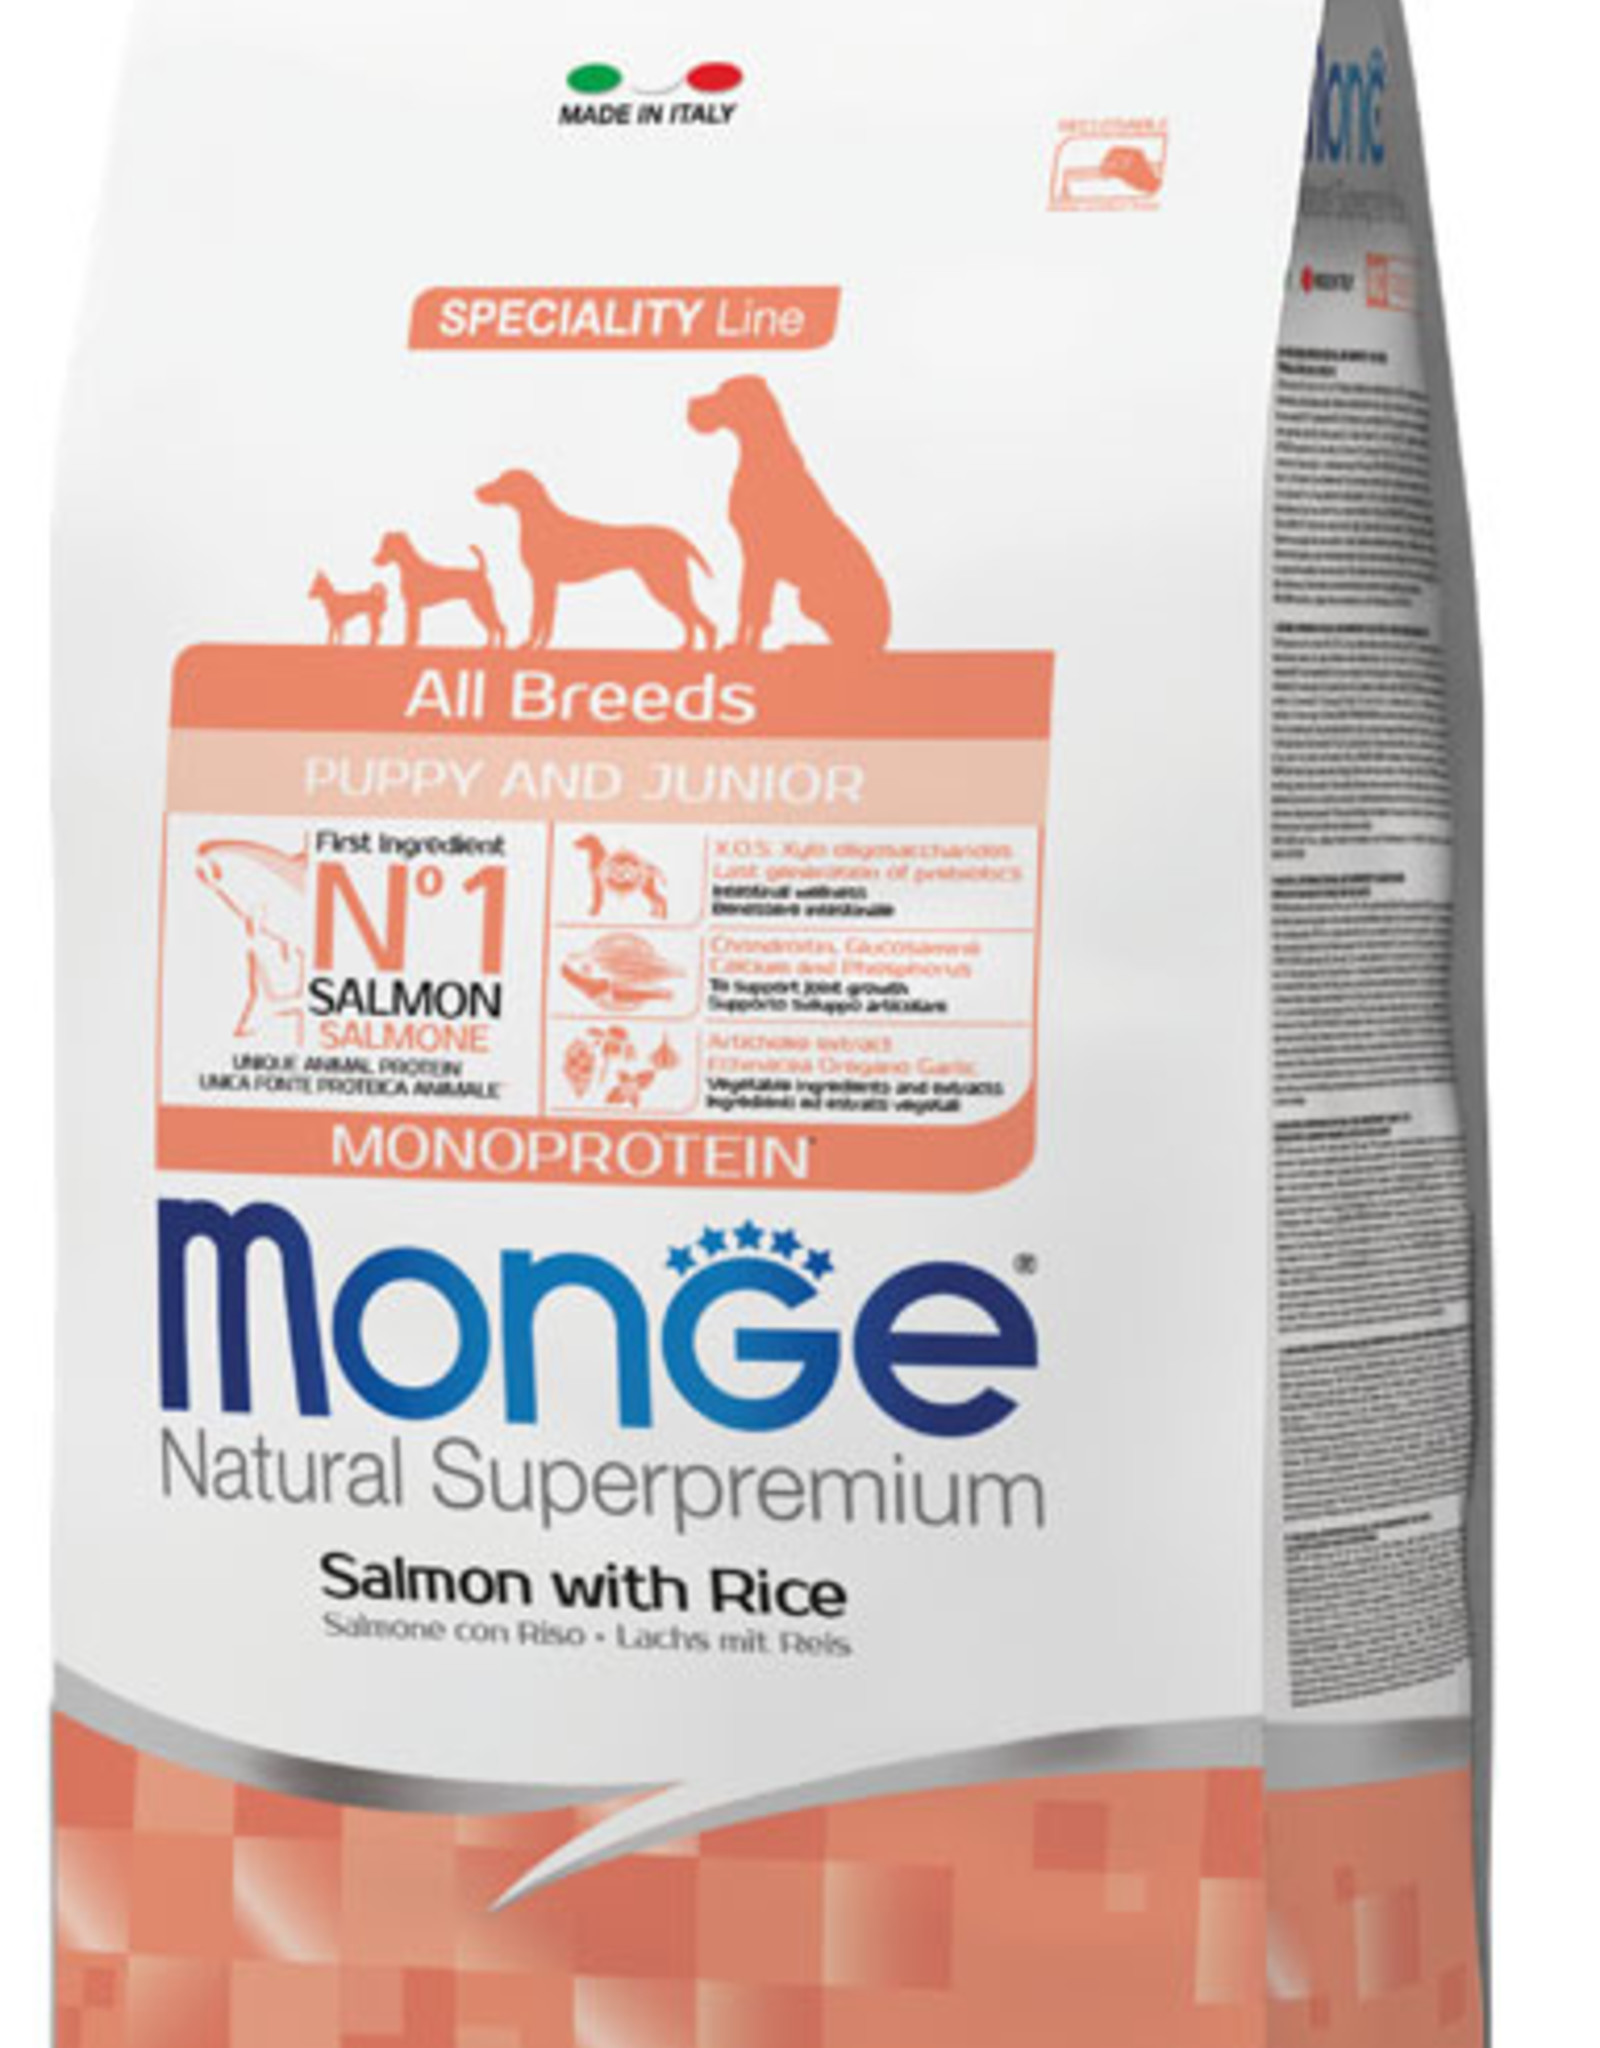 Monge Specialty line All Breeds Puppy & Junior Salmon and Rice